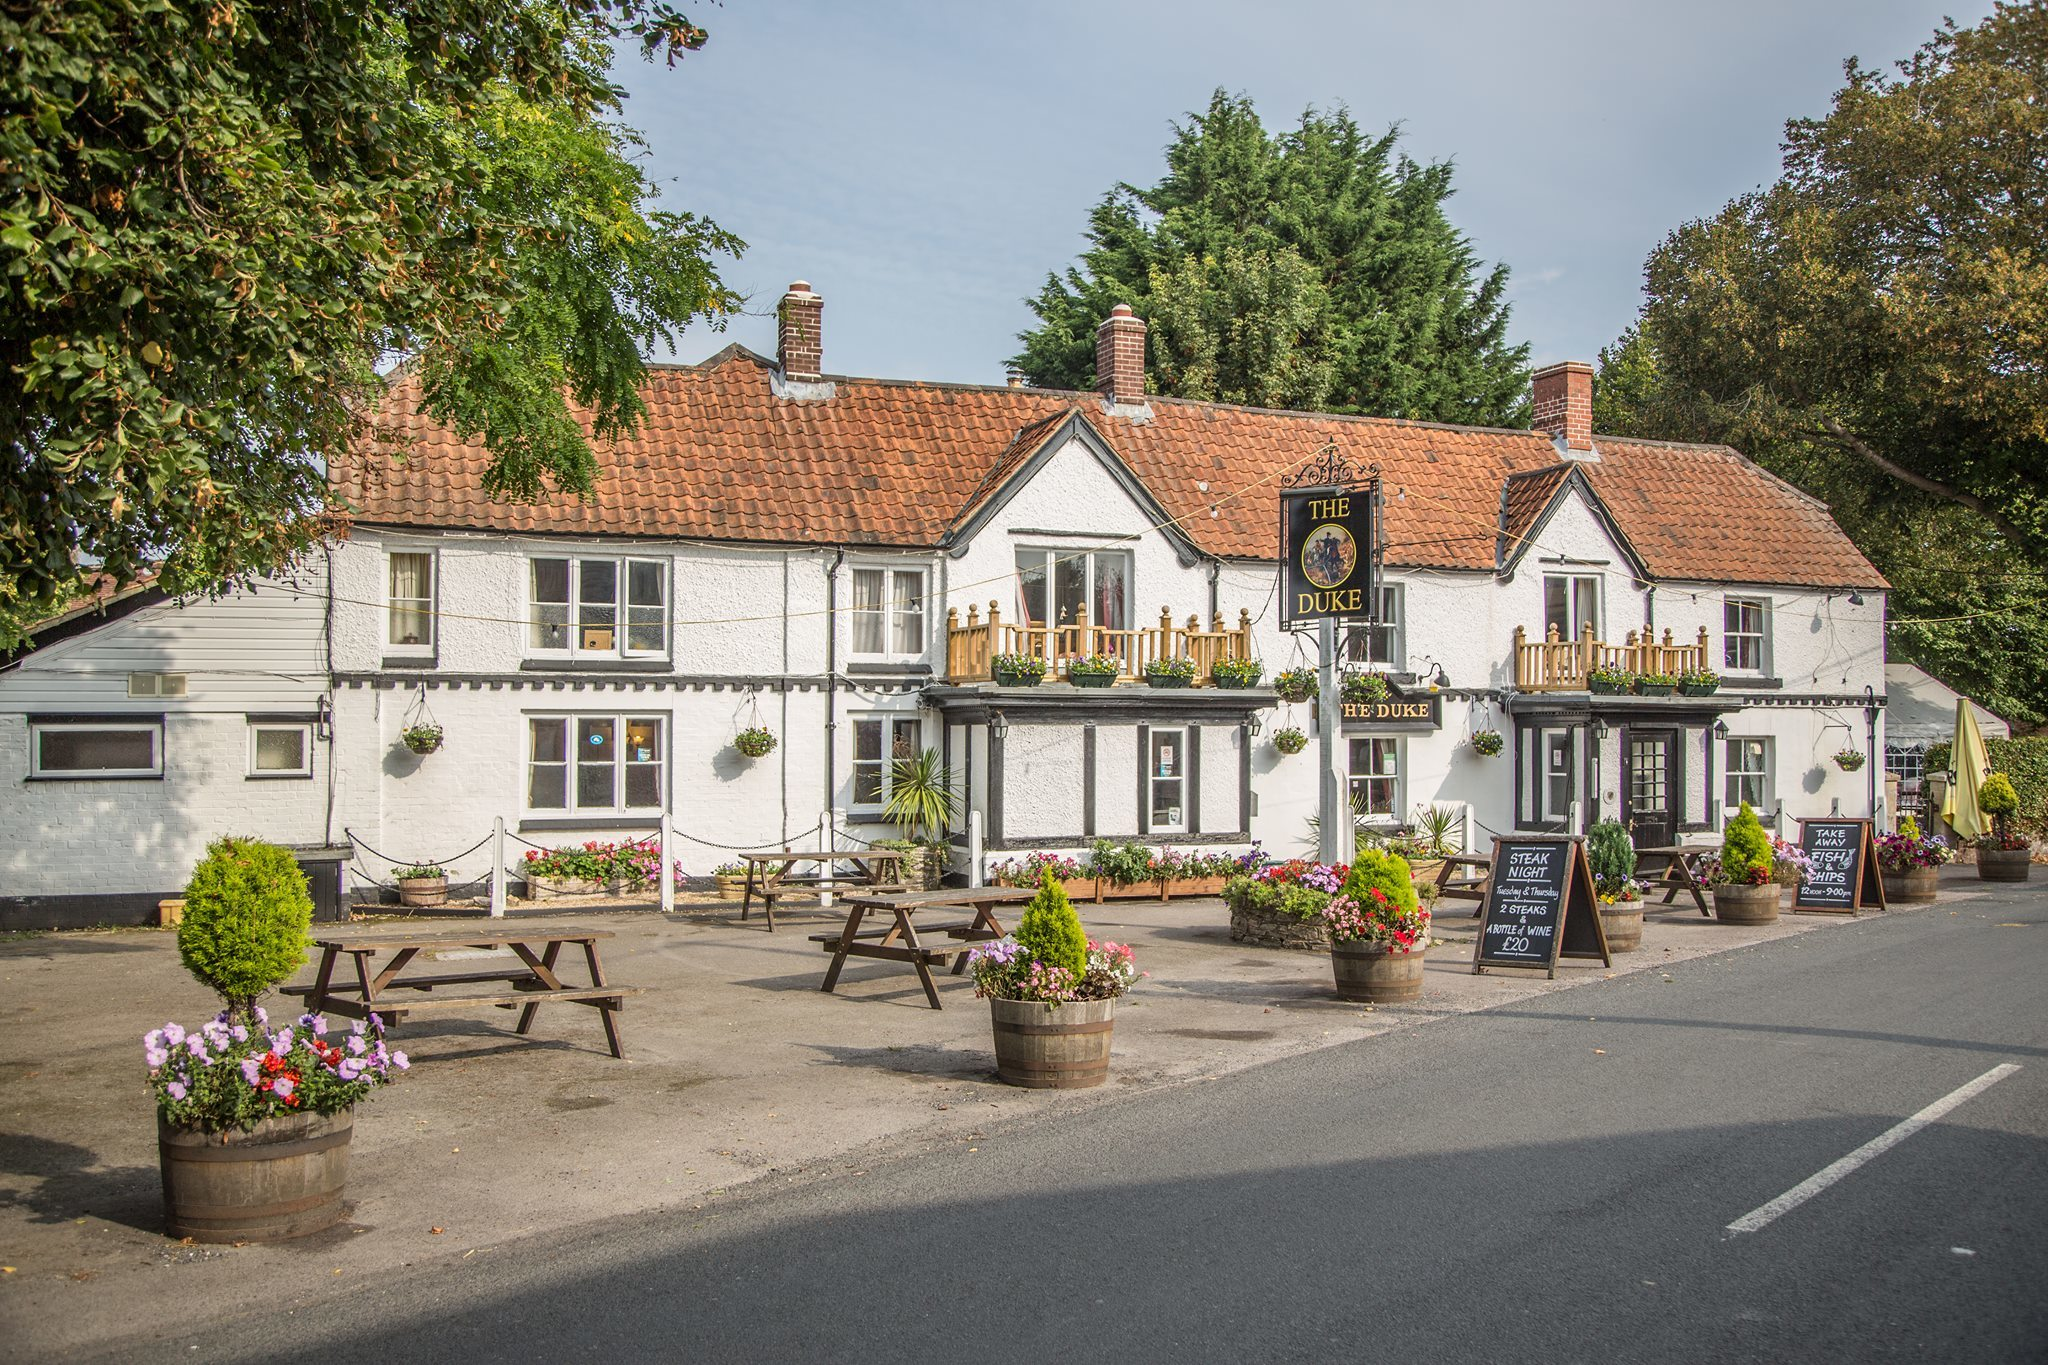 Pub lease of The Duke at Bratton is up for sale